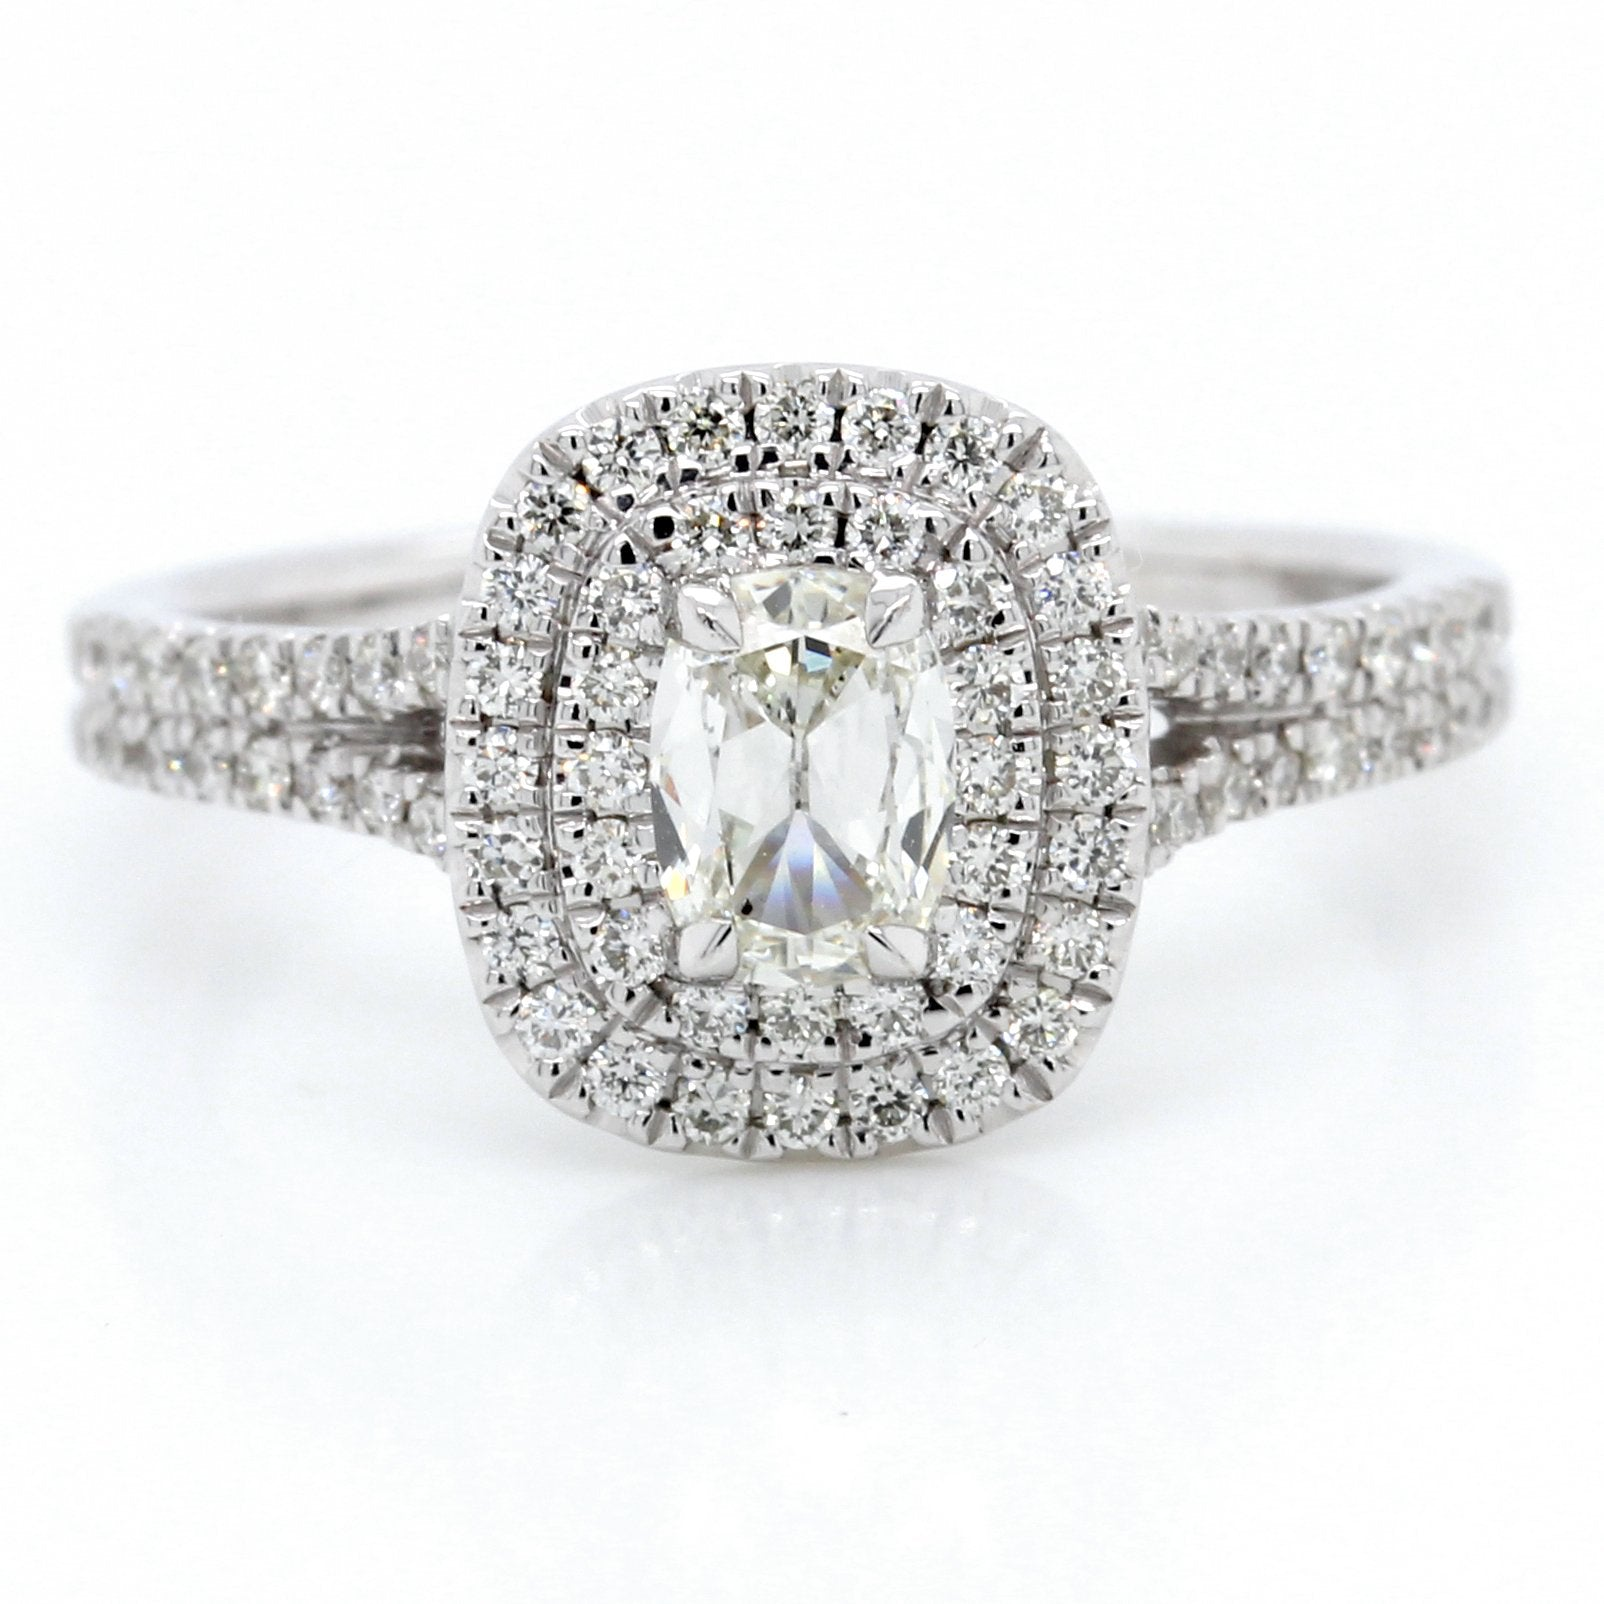 18K White Gold Cushion Halo Engagement Ring